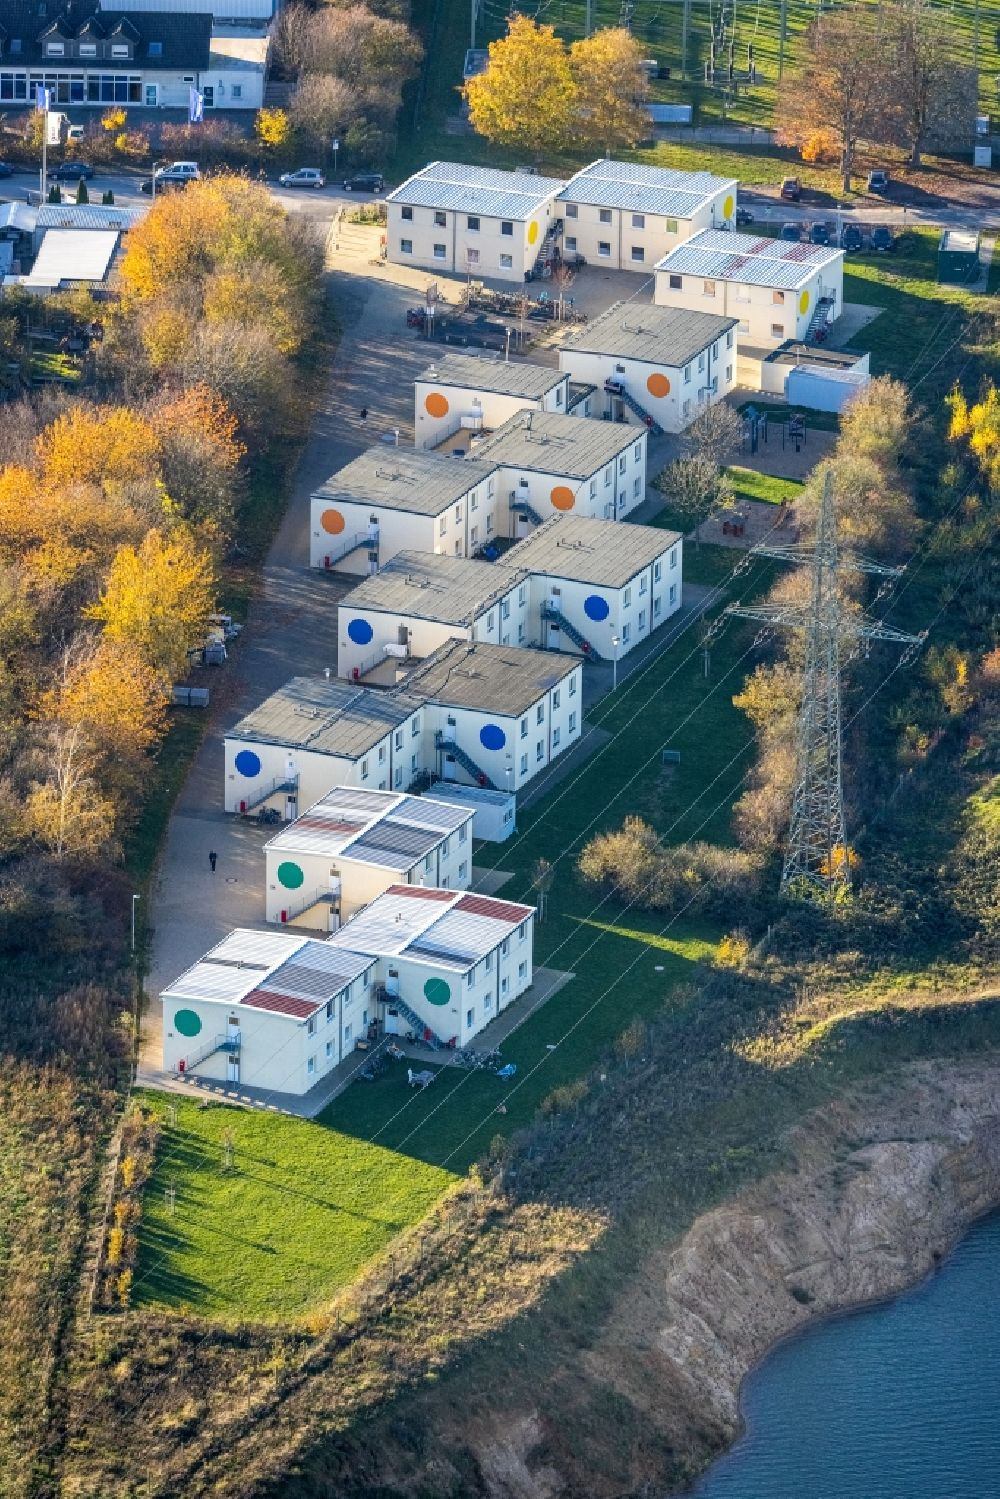 Kamp-Lintfort from above - Container settlement as temporary shelter and reception center for refugees on Friedrichstrasse in the district Niersenbruch in Kamp-Lintfort in the state North Rhine-Westphalia, Germany